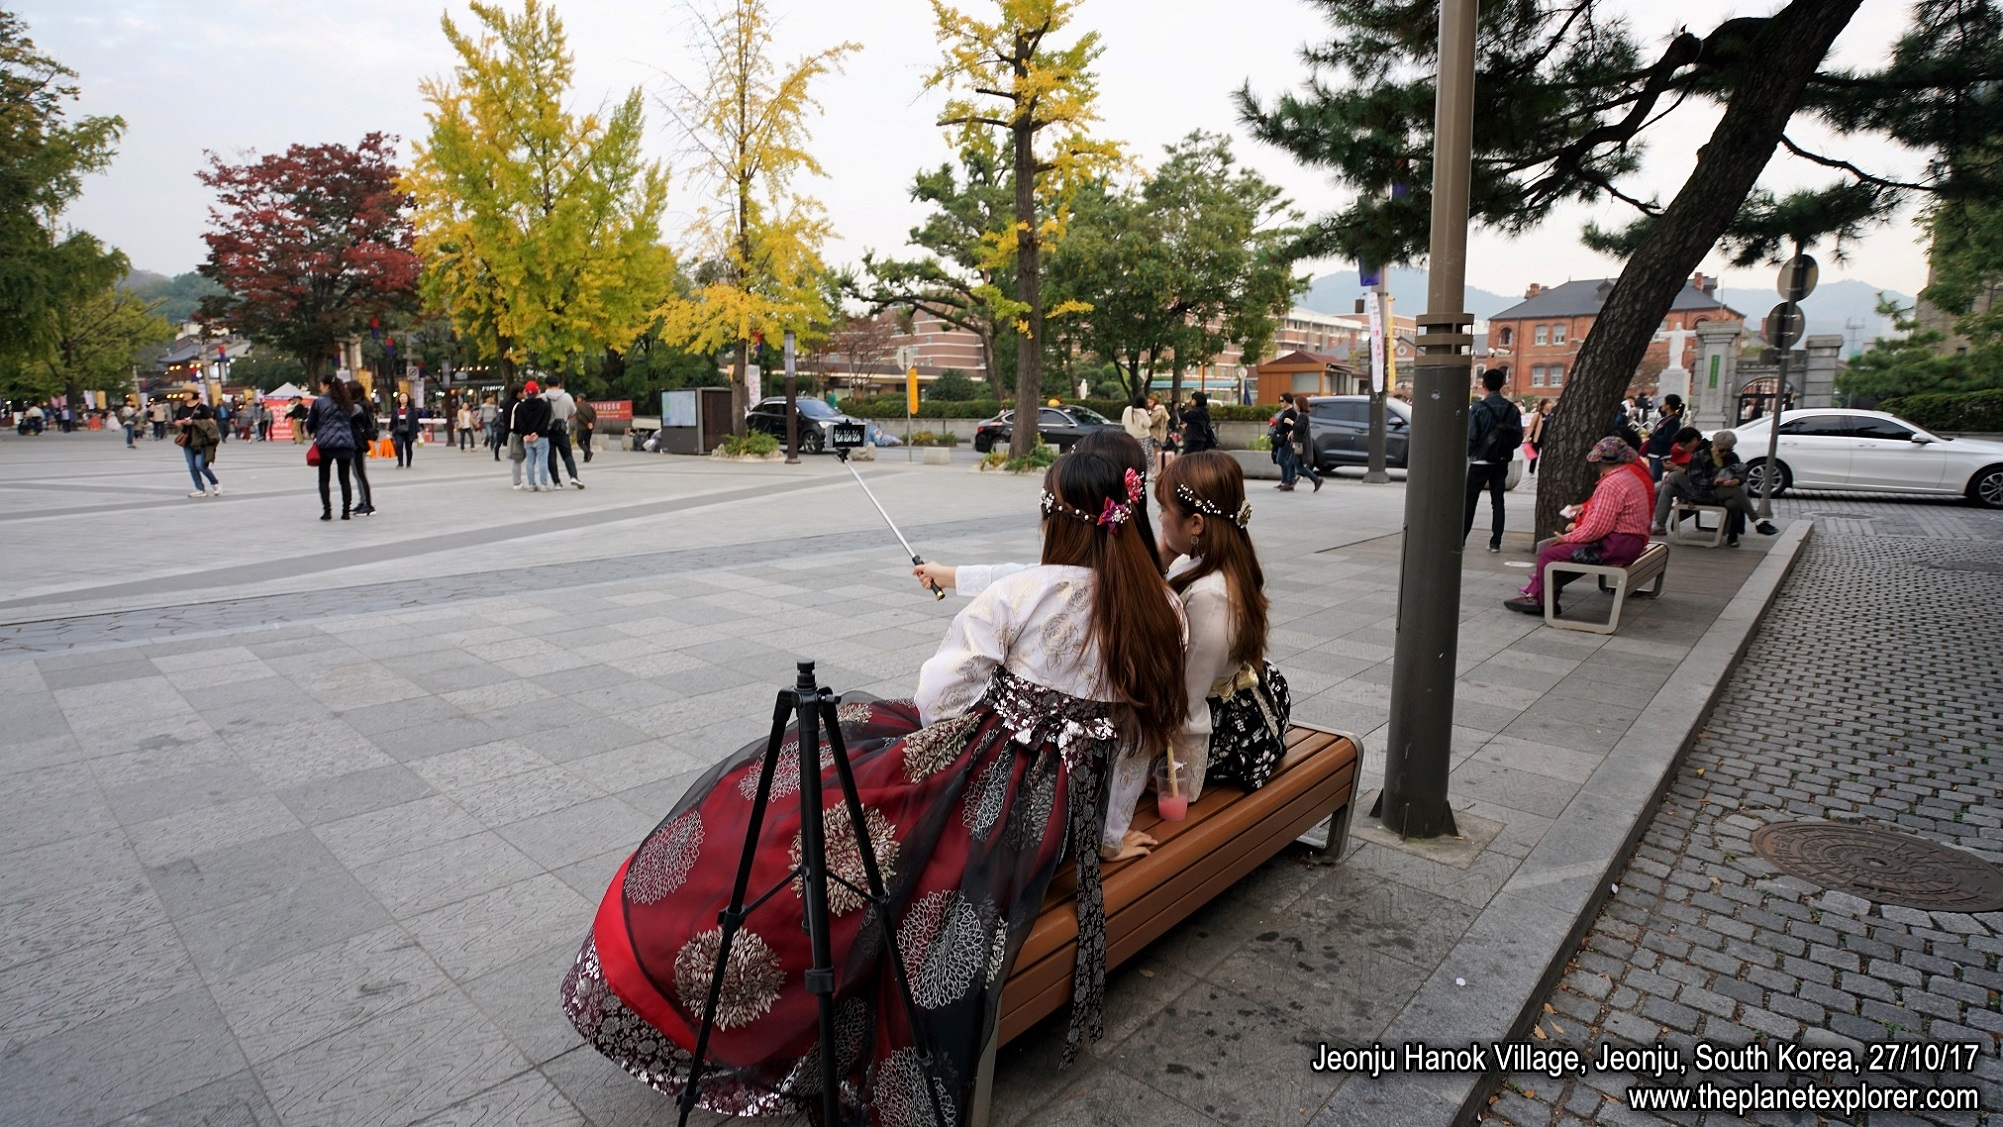 20171027_1706_South Korea_Jeonju_Jeonju Hanok Village_DSC06192_Sony a7R2_LR_@www